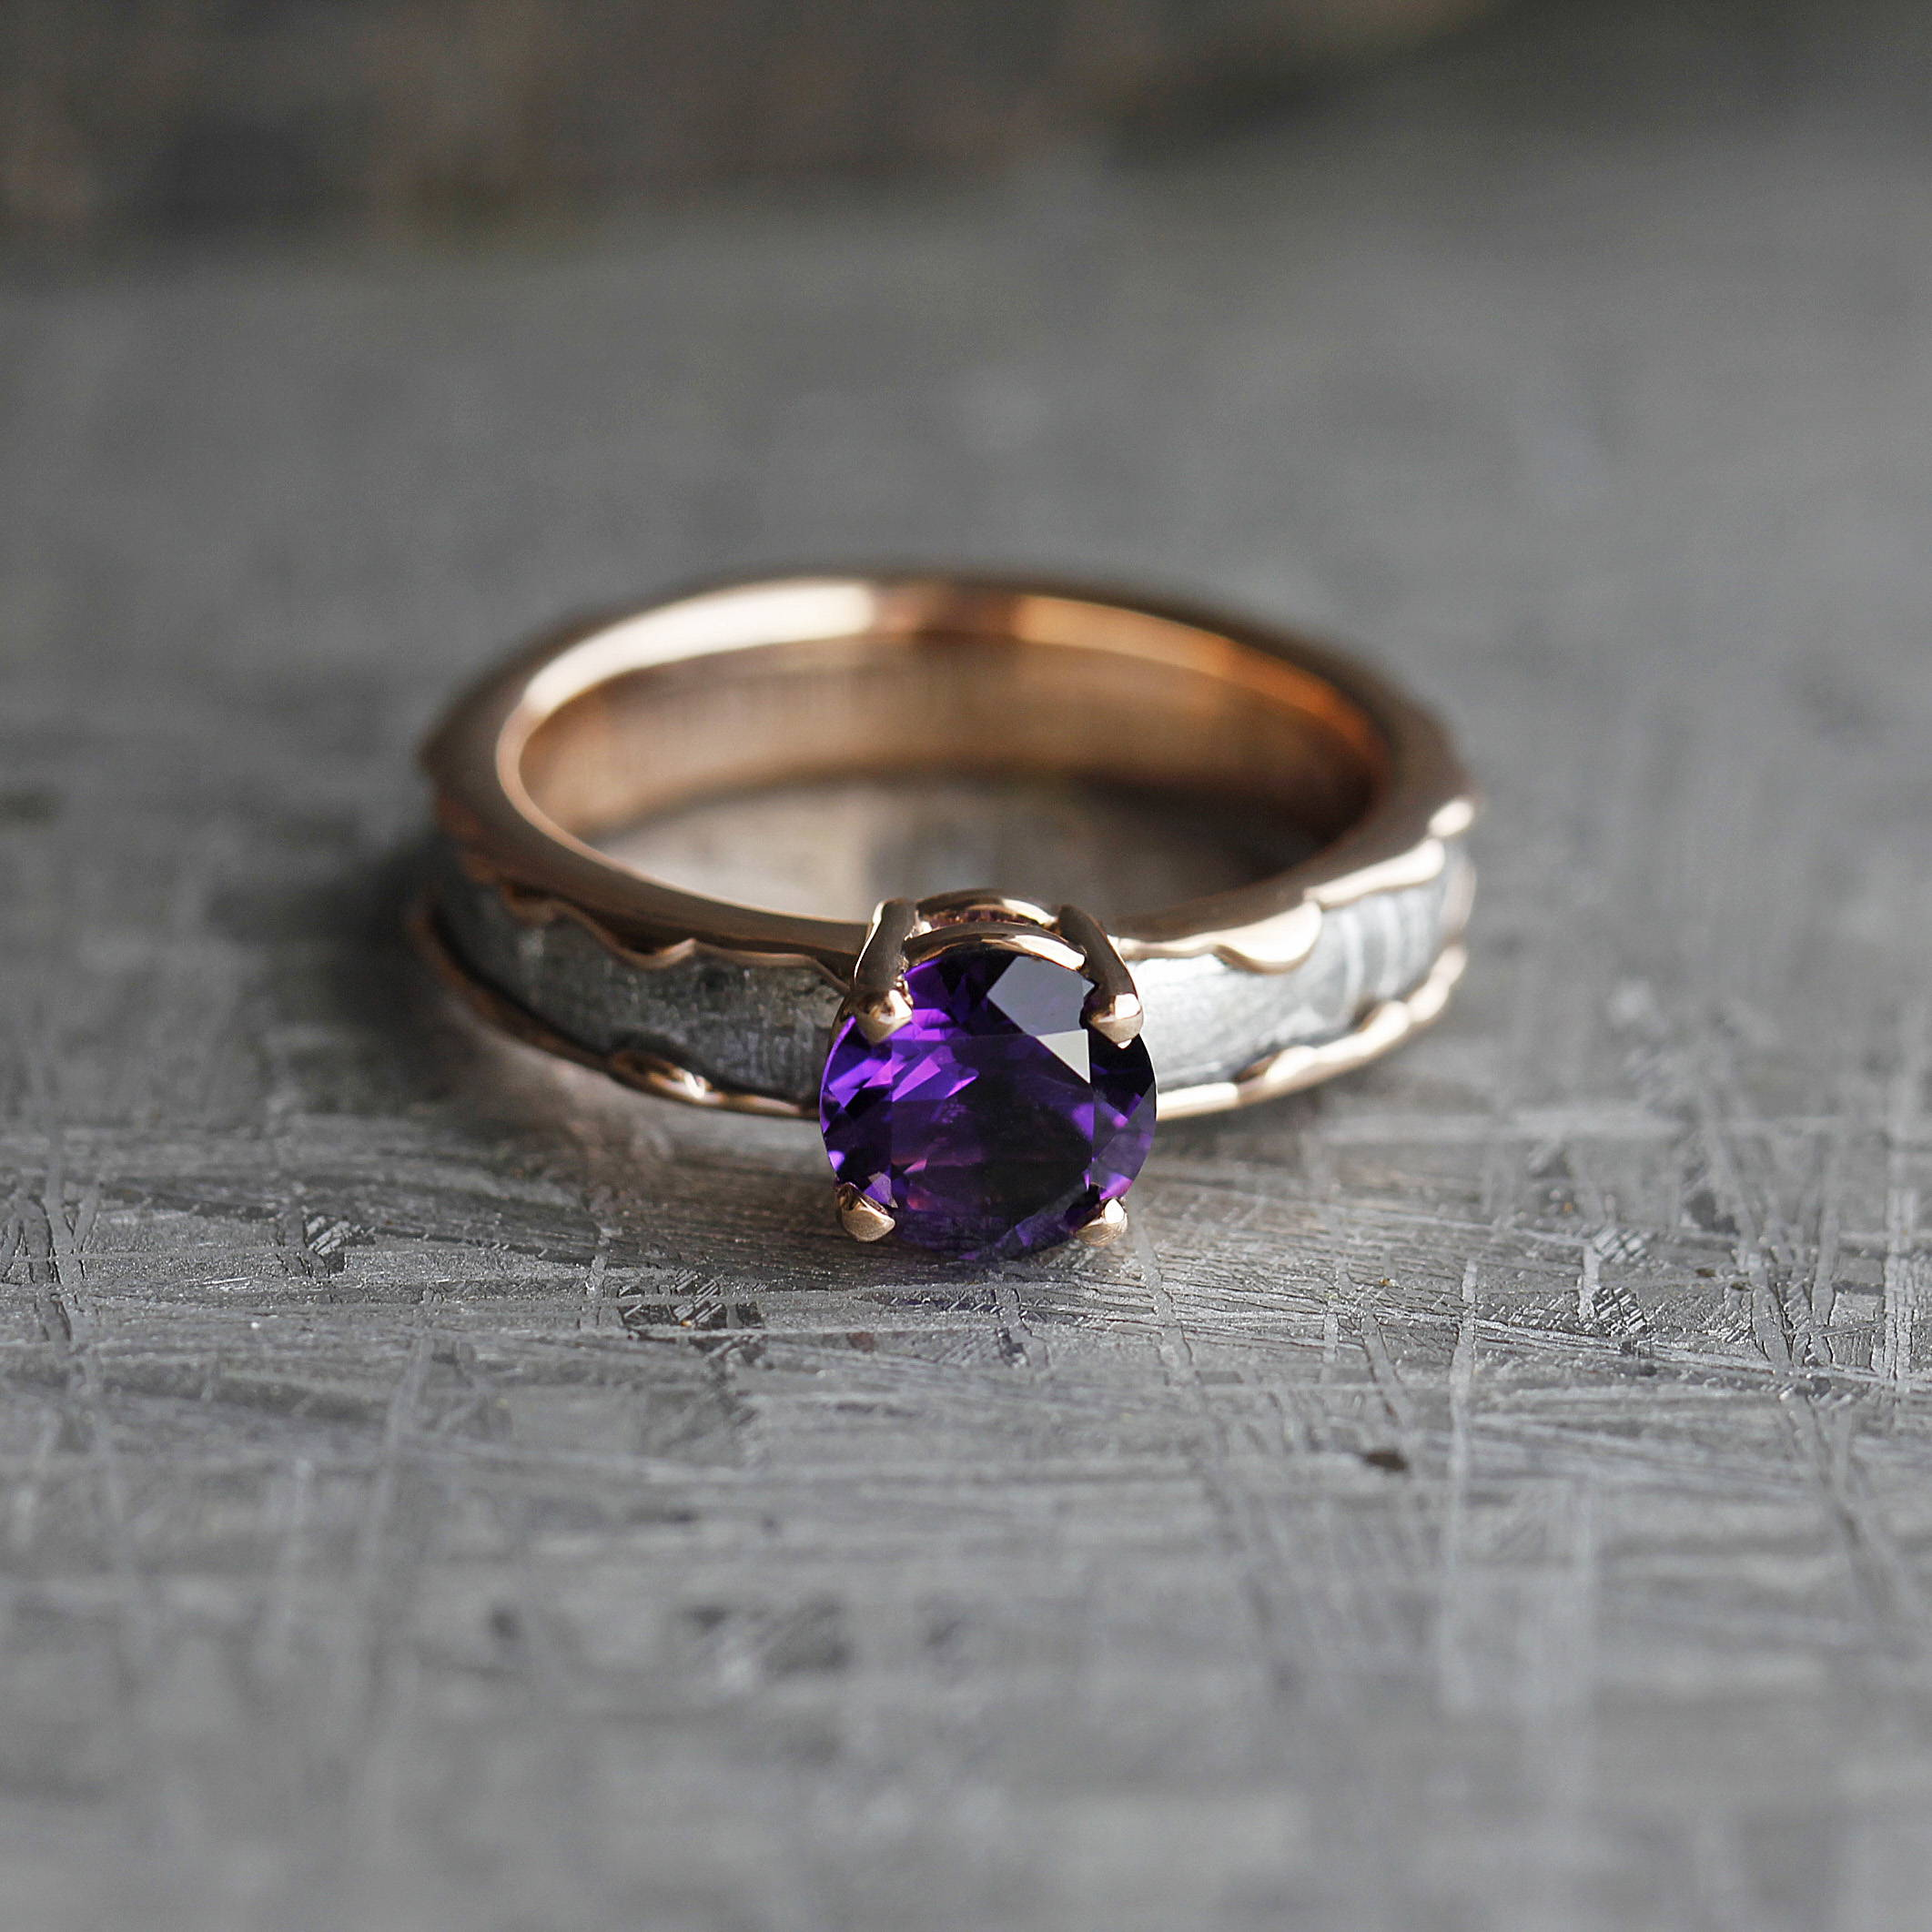 AMETHYST ENGAGEMENT RING, METEORITE IN WAVY ROSE GOLD RING